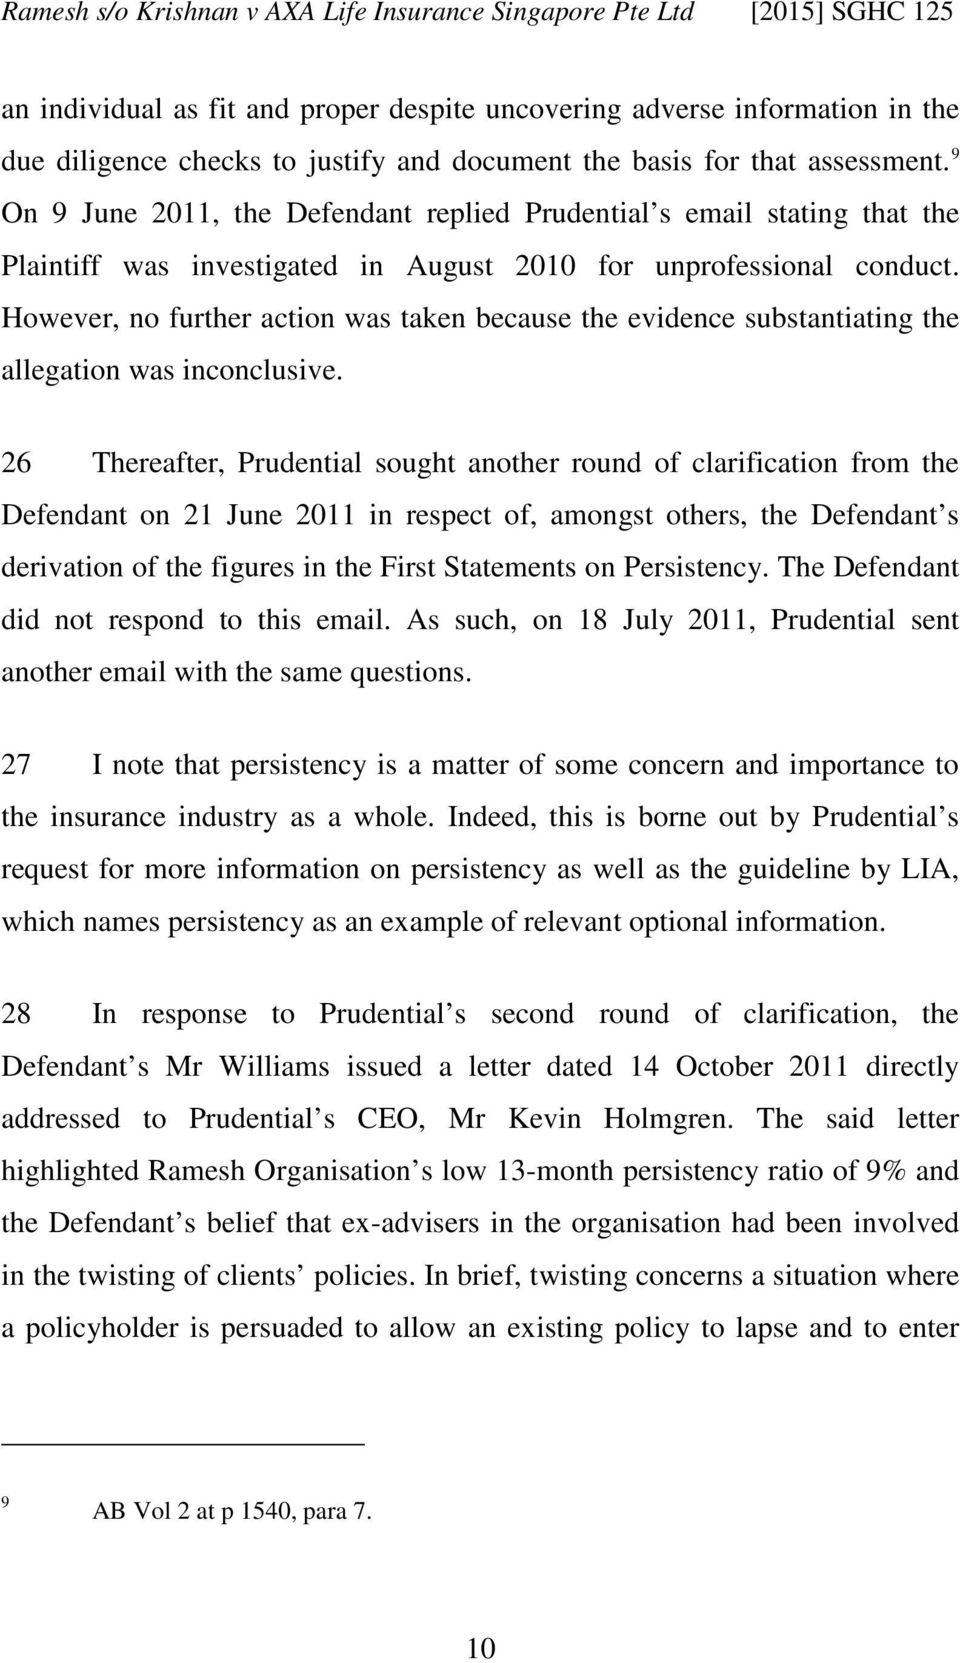 However, no further action was taken because the evidence substantiating the allegation was inconclusive.